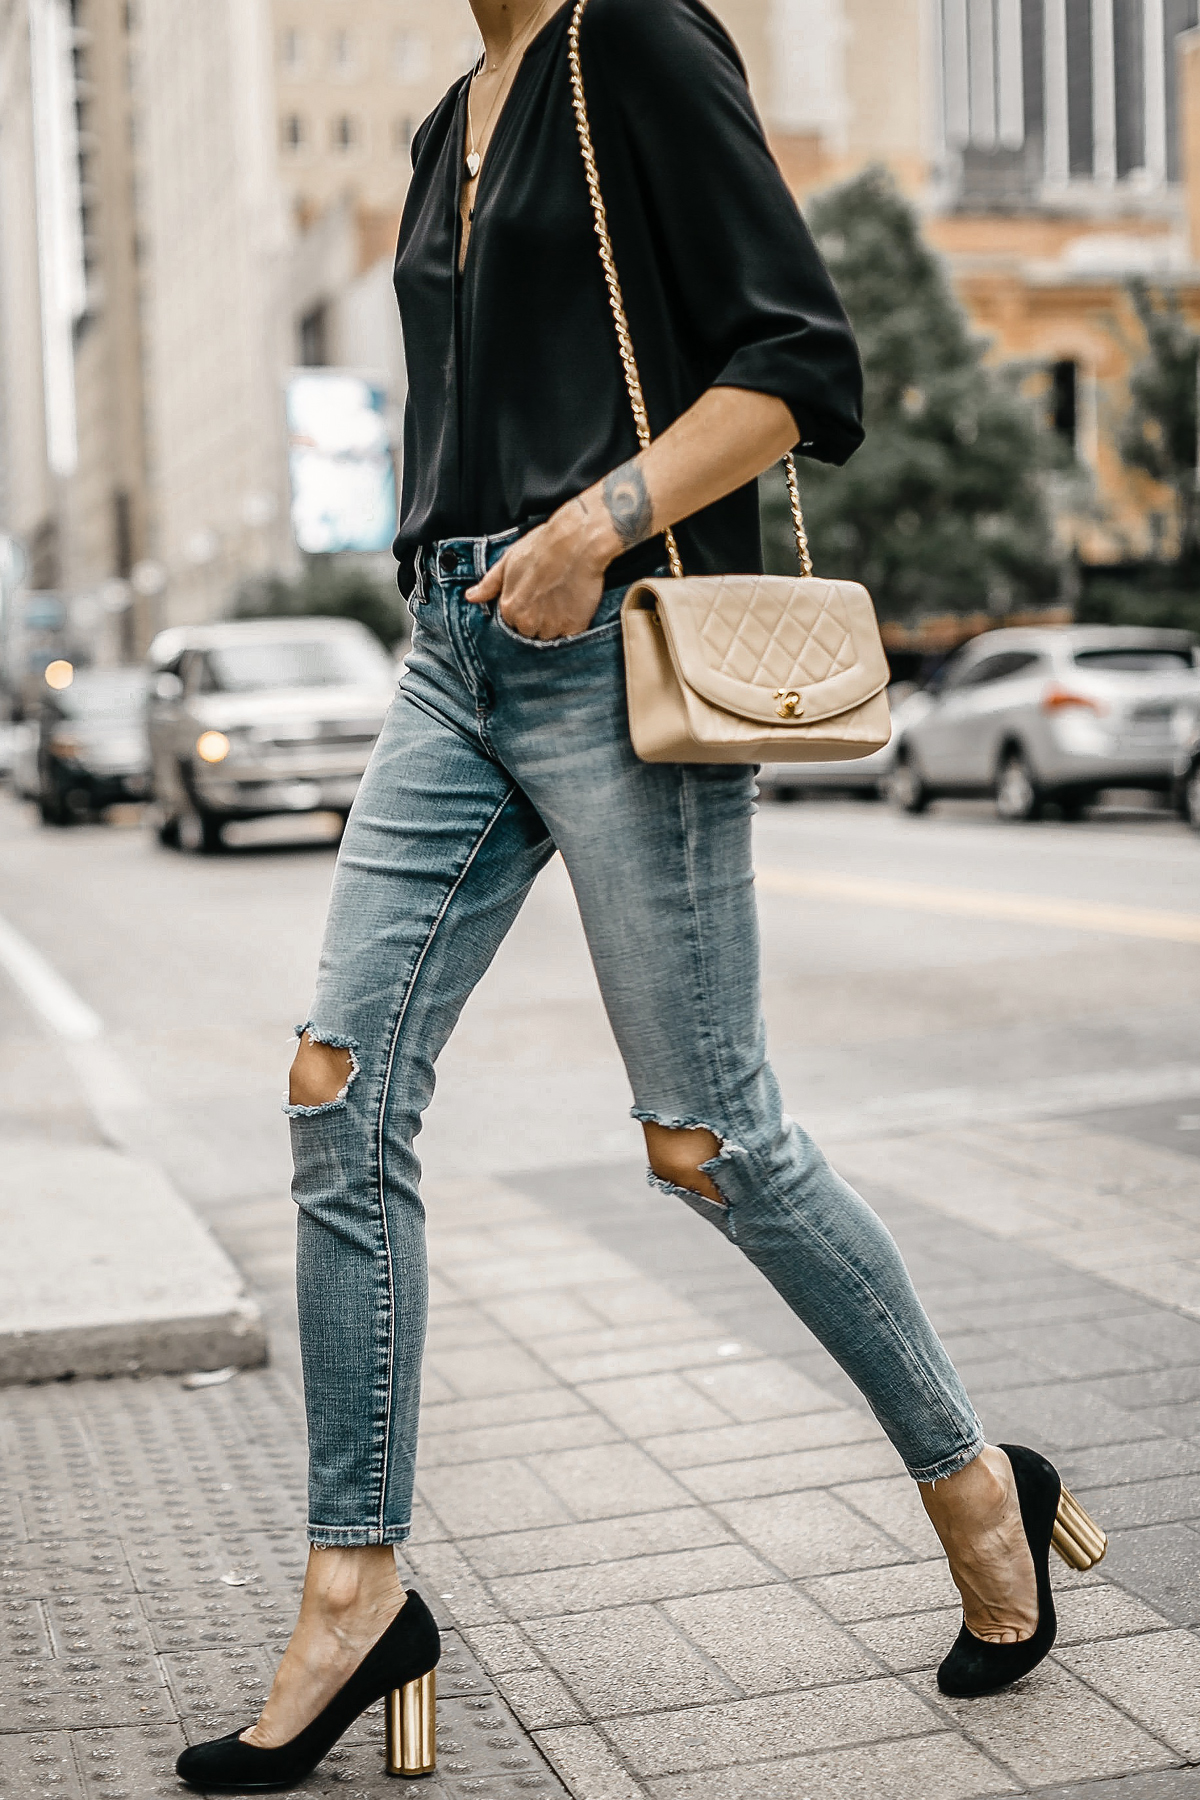 Woman Wearing Black Top Blanknyc Ripped Denim Skinny Jeans Salvatore Ferragamo Black Pumps Tan Chanel Quilted Handbag Fashion Jackson Dallas Blogger Fashion Blogger Street Style